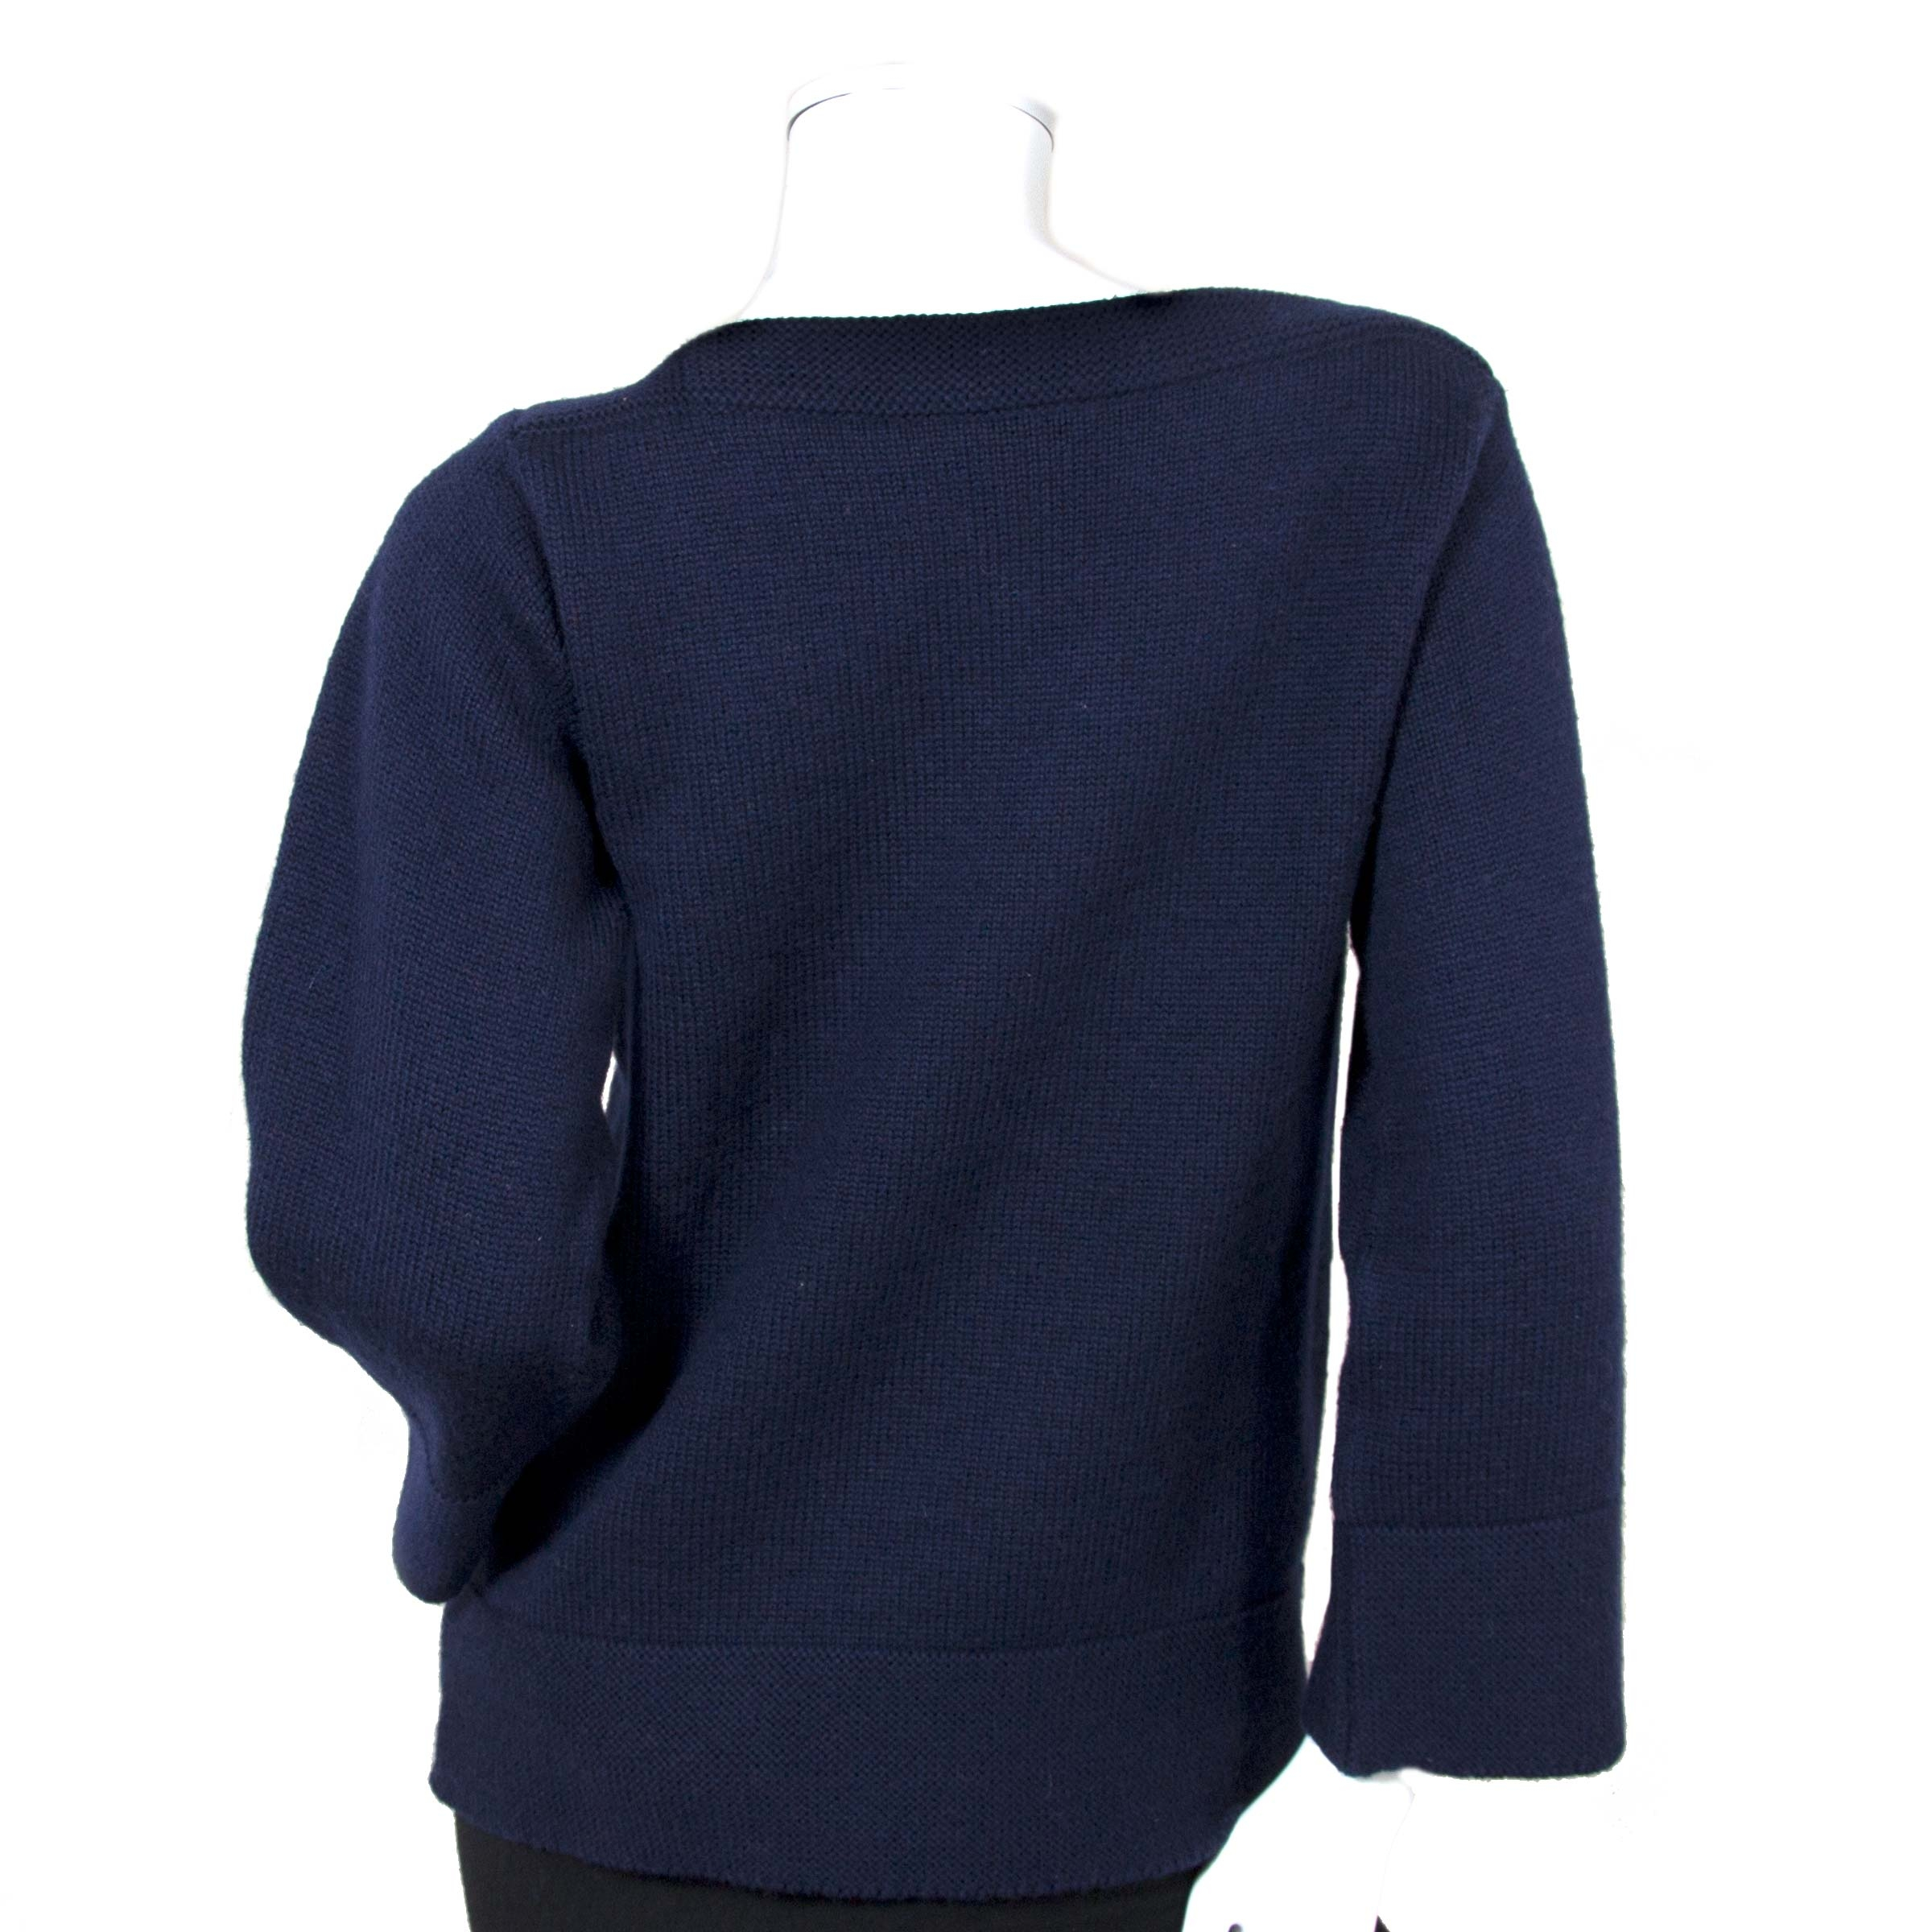 hermès paris navy wool sweater now for sale at labellov vintage fashion webshop belgium